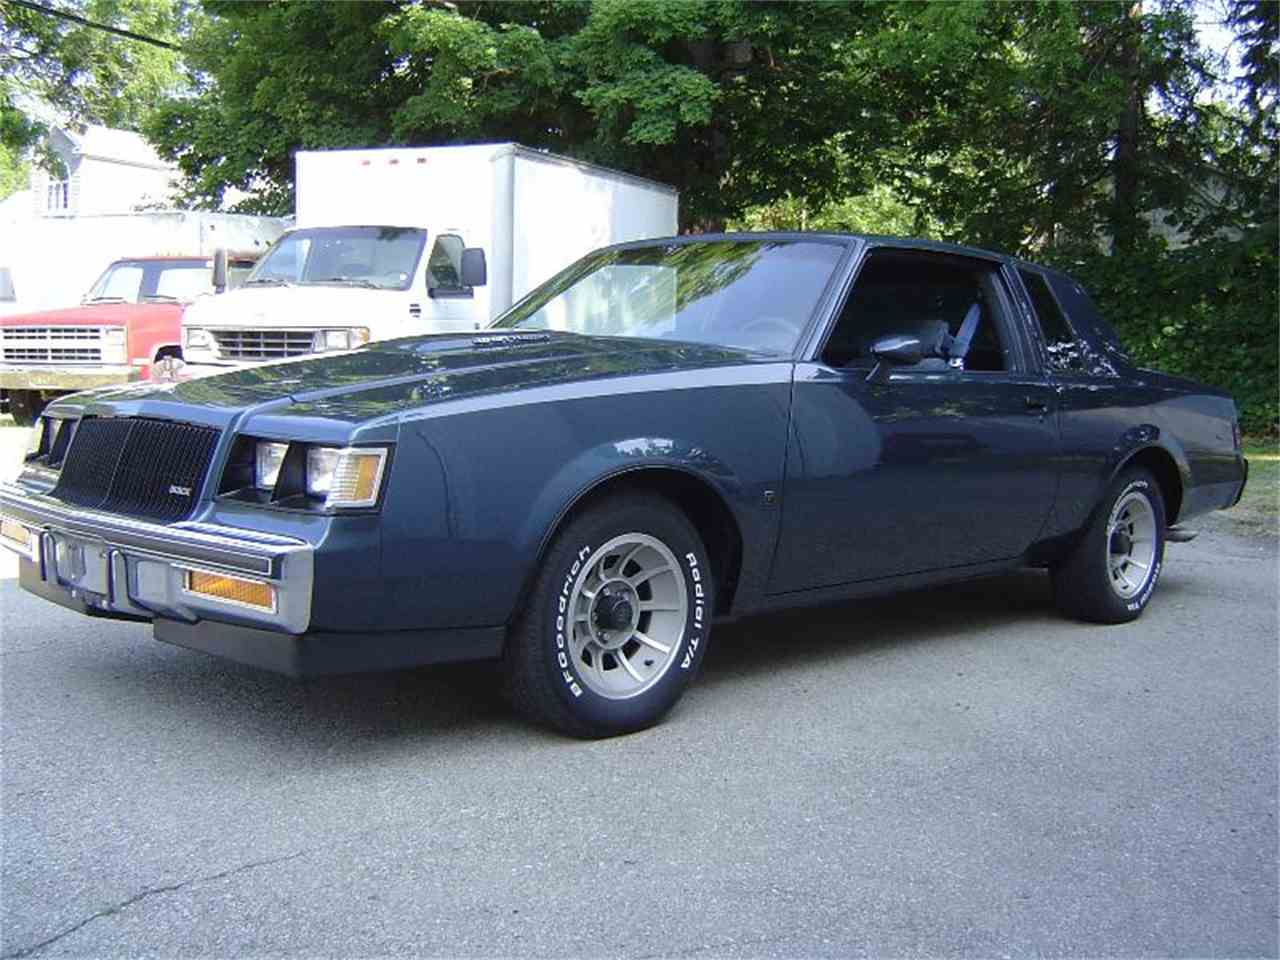 buick grand national details com for autabuy sale cfm thumbnail orig vehicles